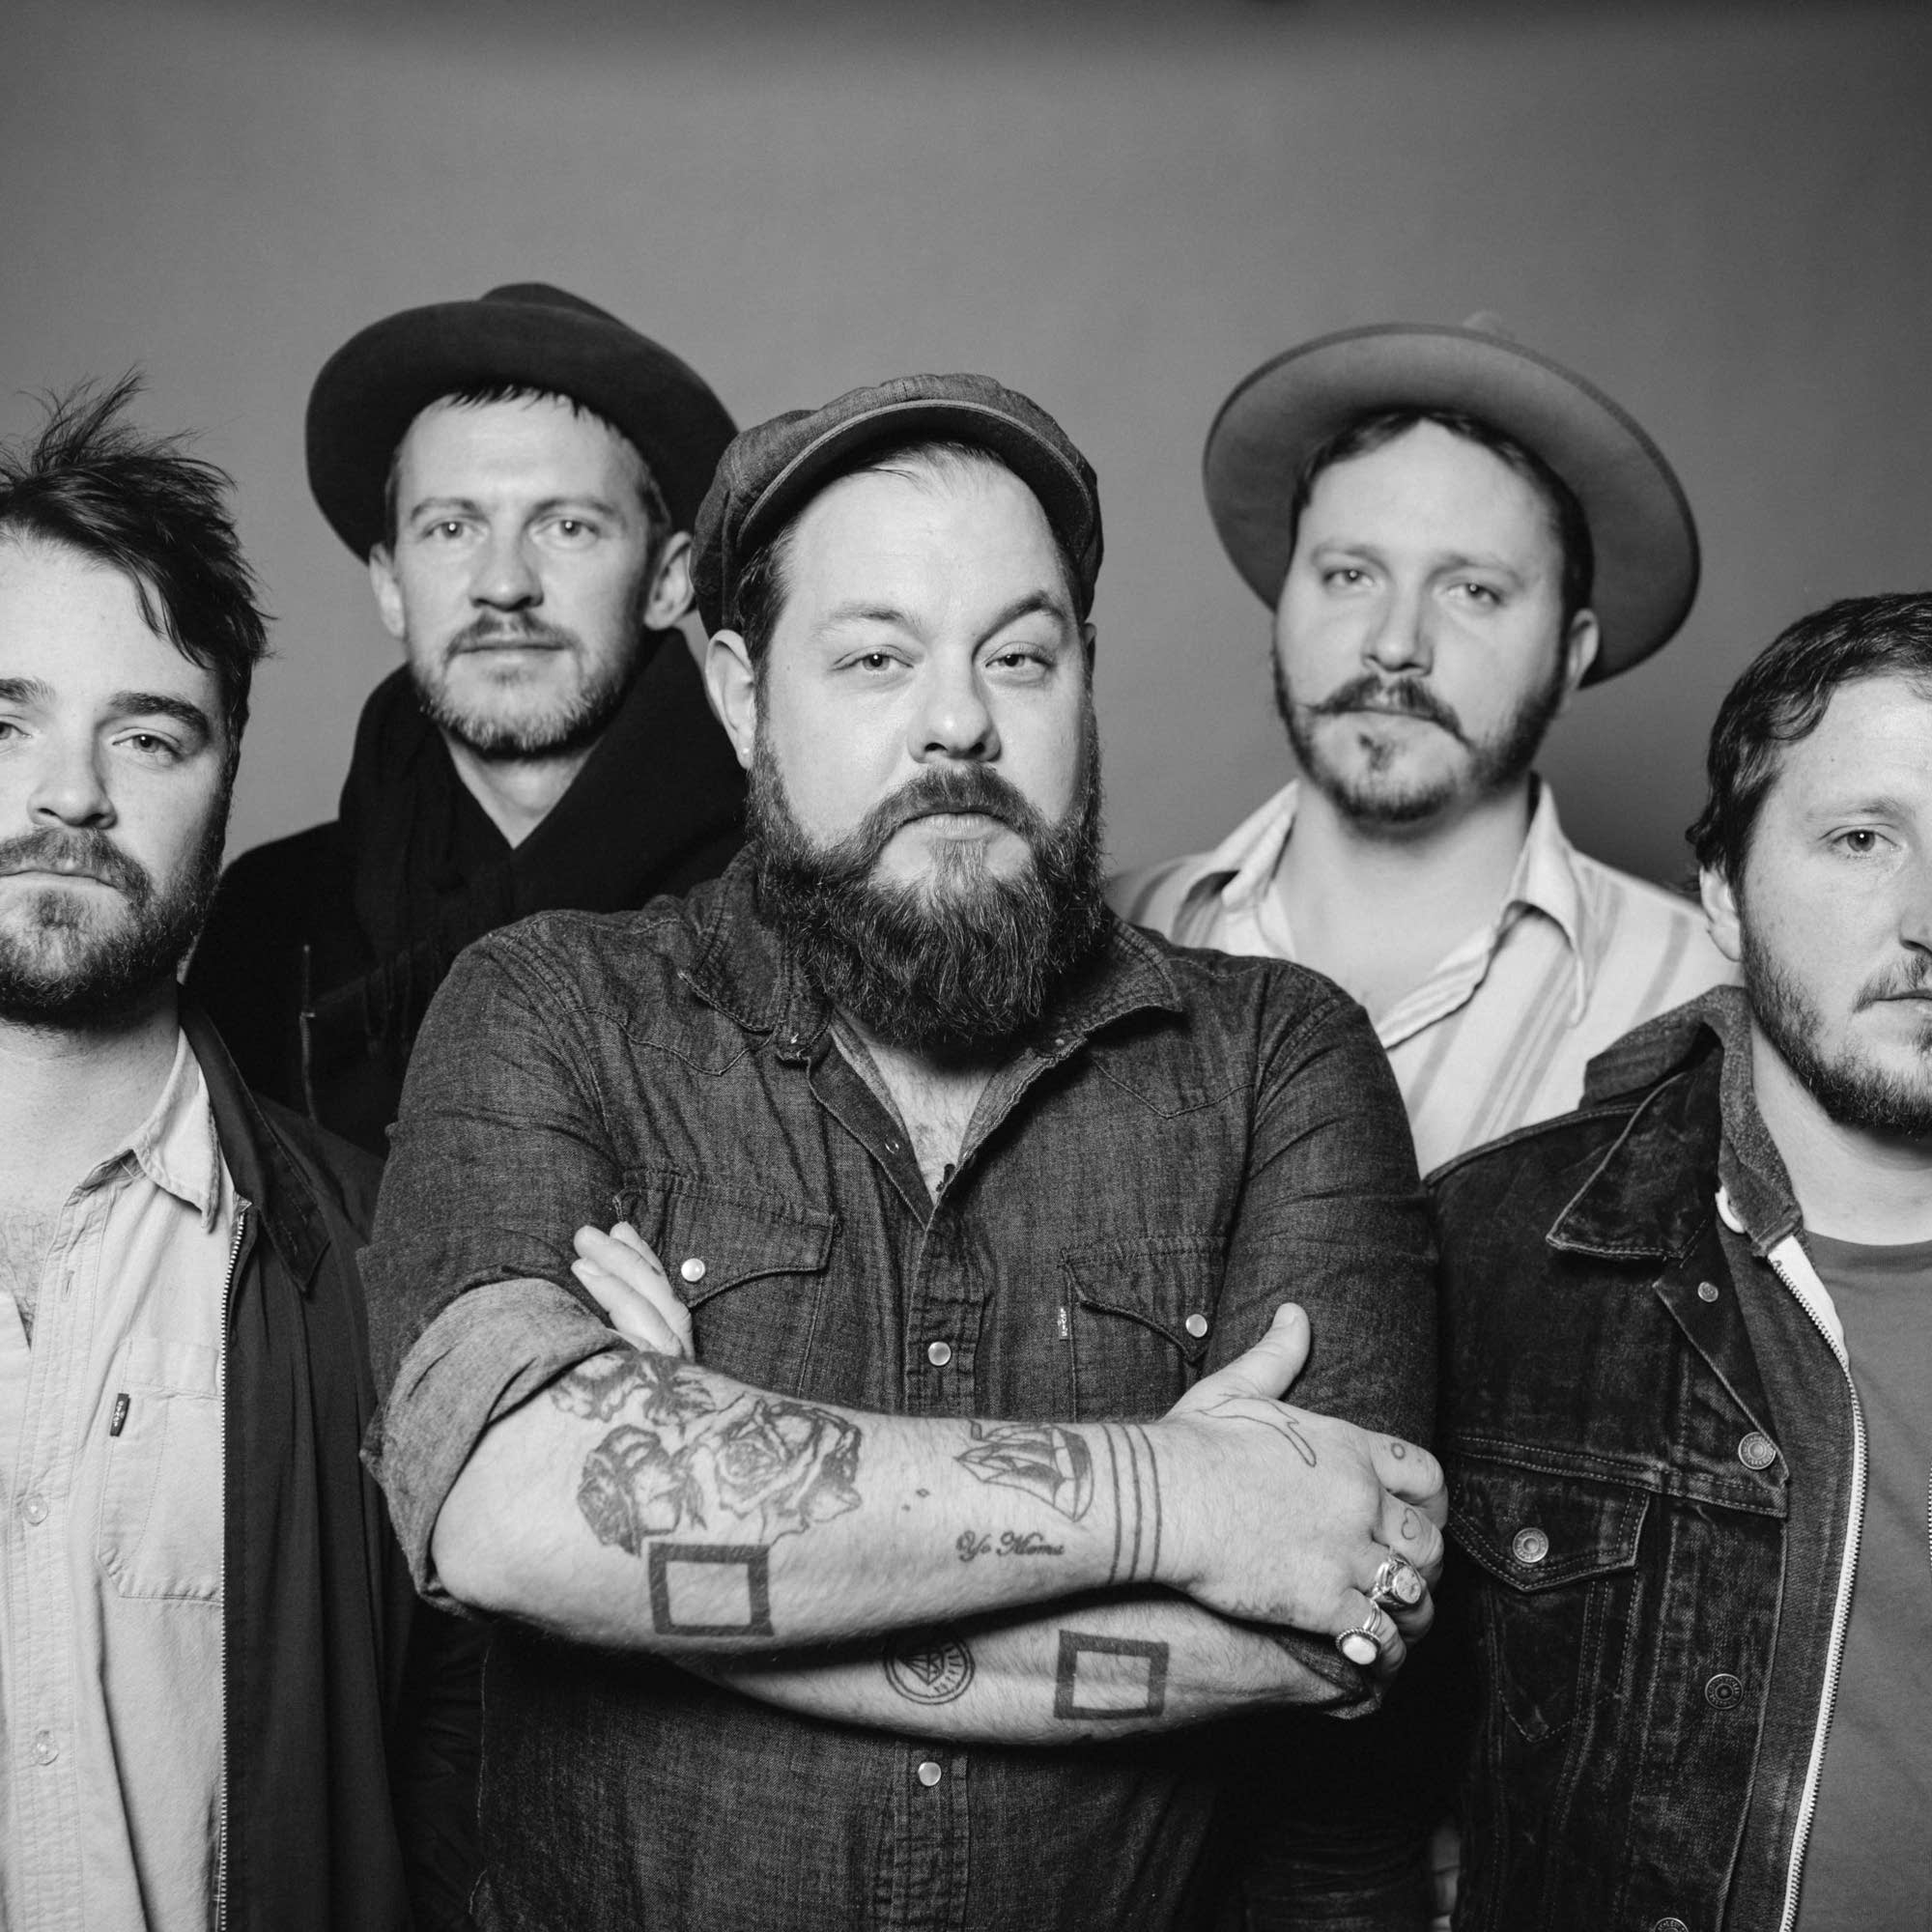 dce331ed Nathaniel Rateliff and the Night Sweats perform in The Current studio